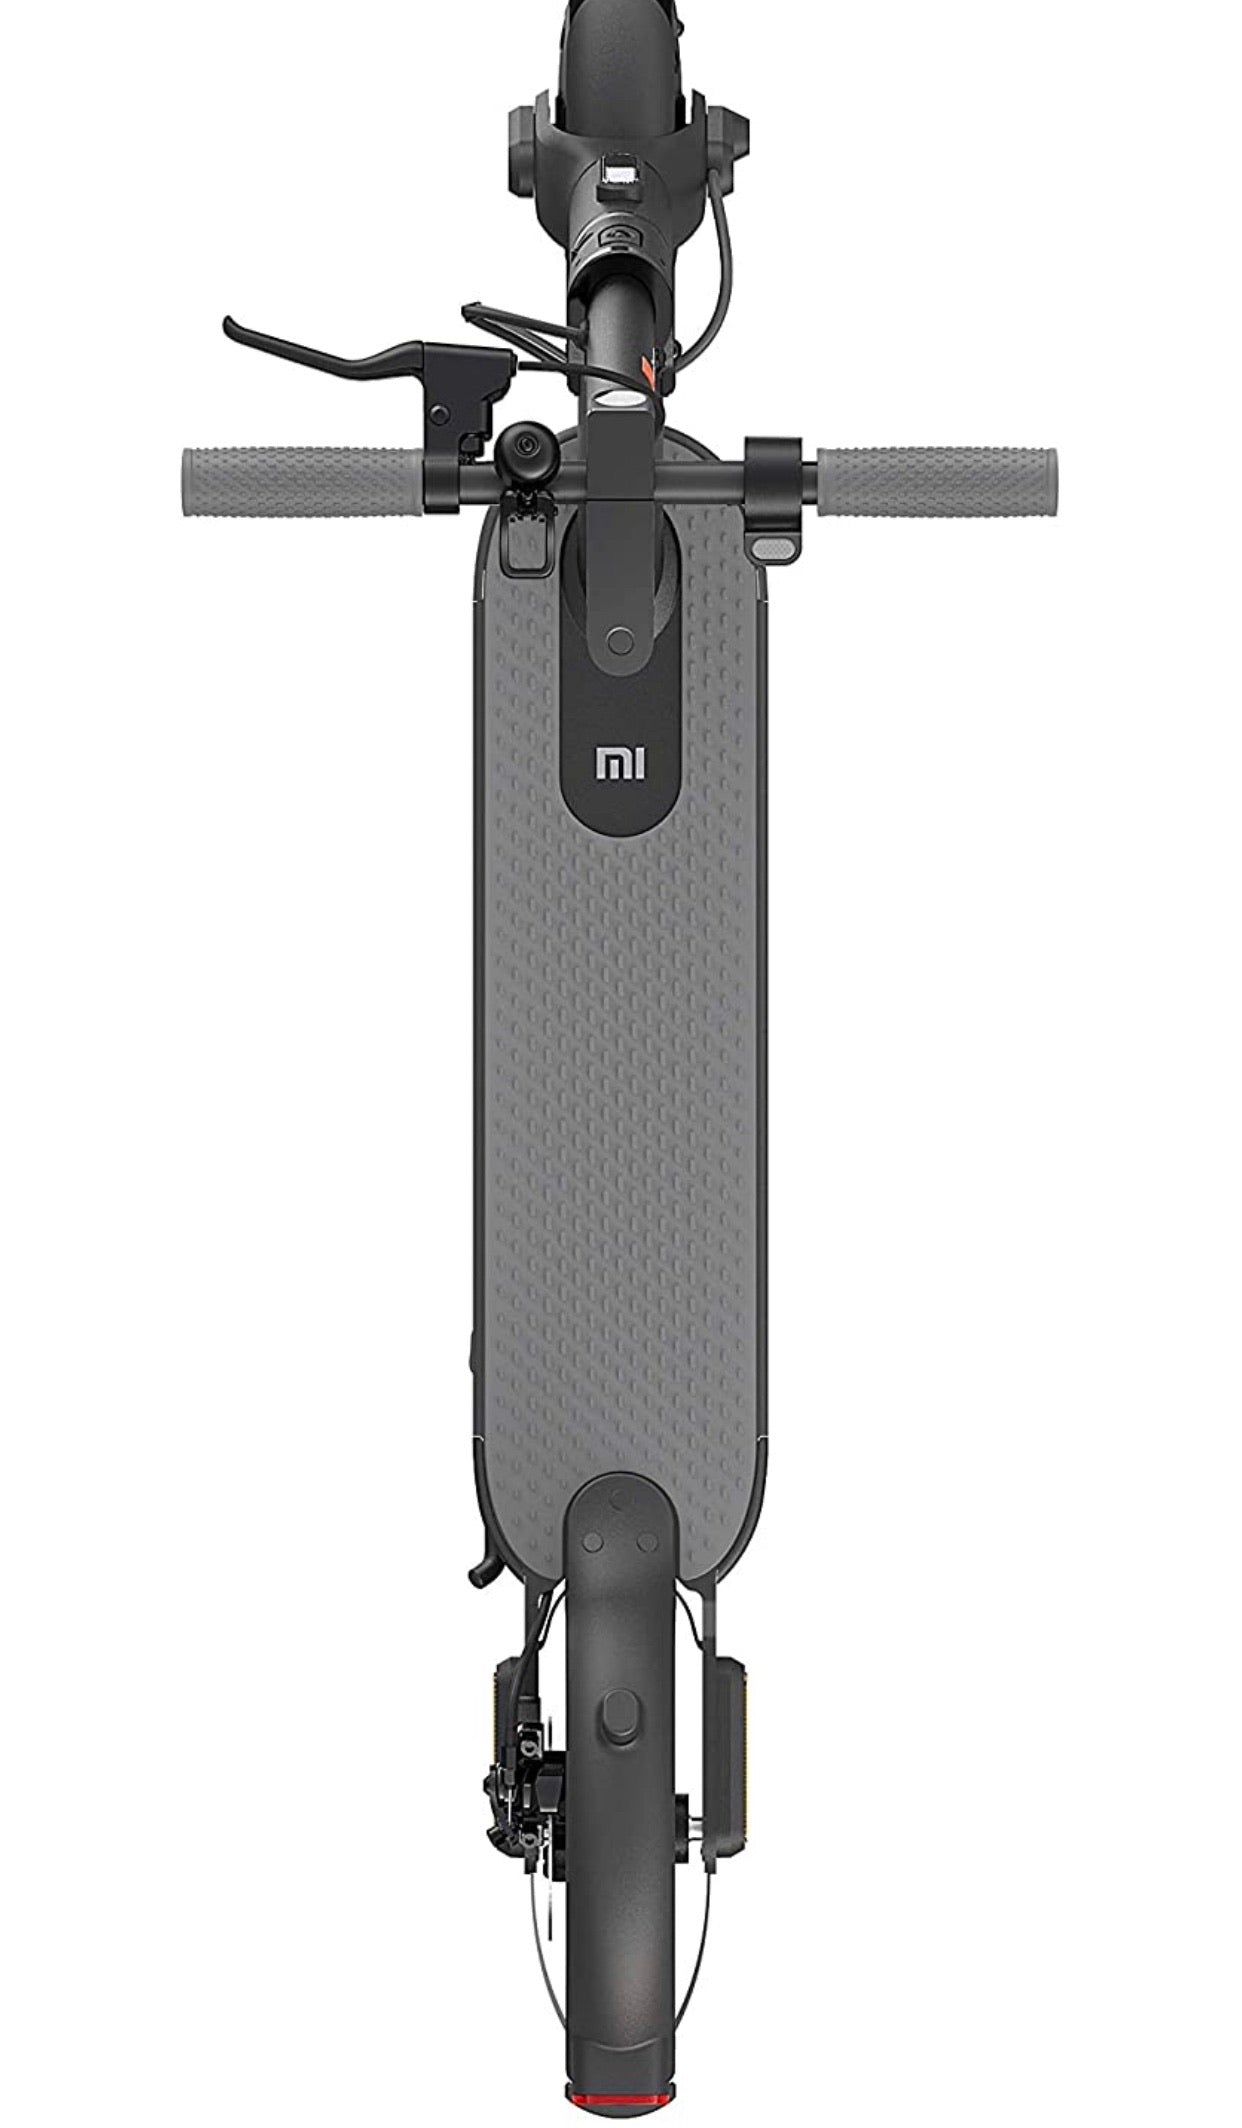 Xiaomi S1 Electric Scooter From Above